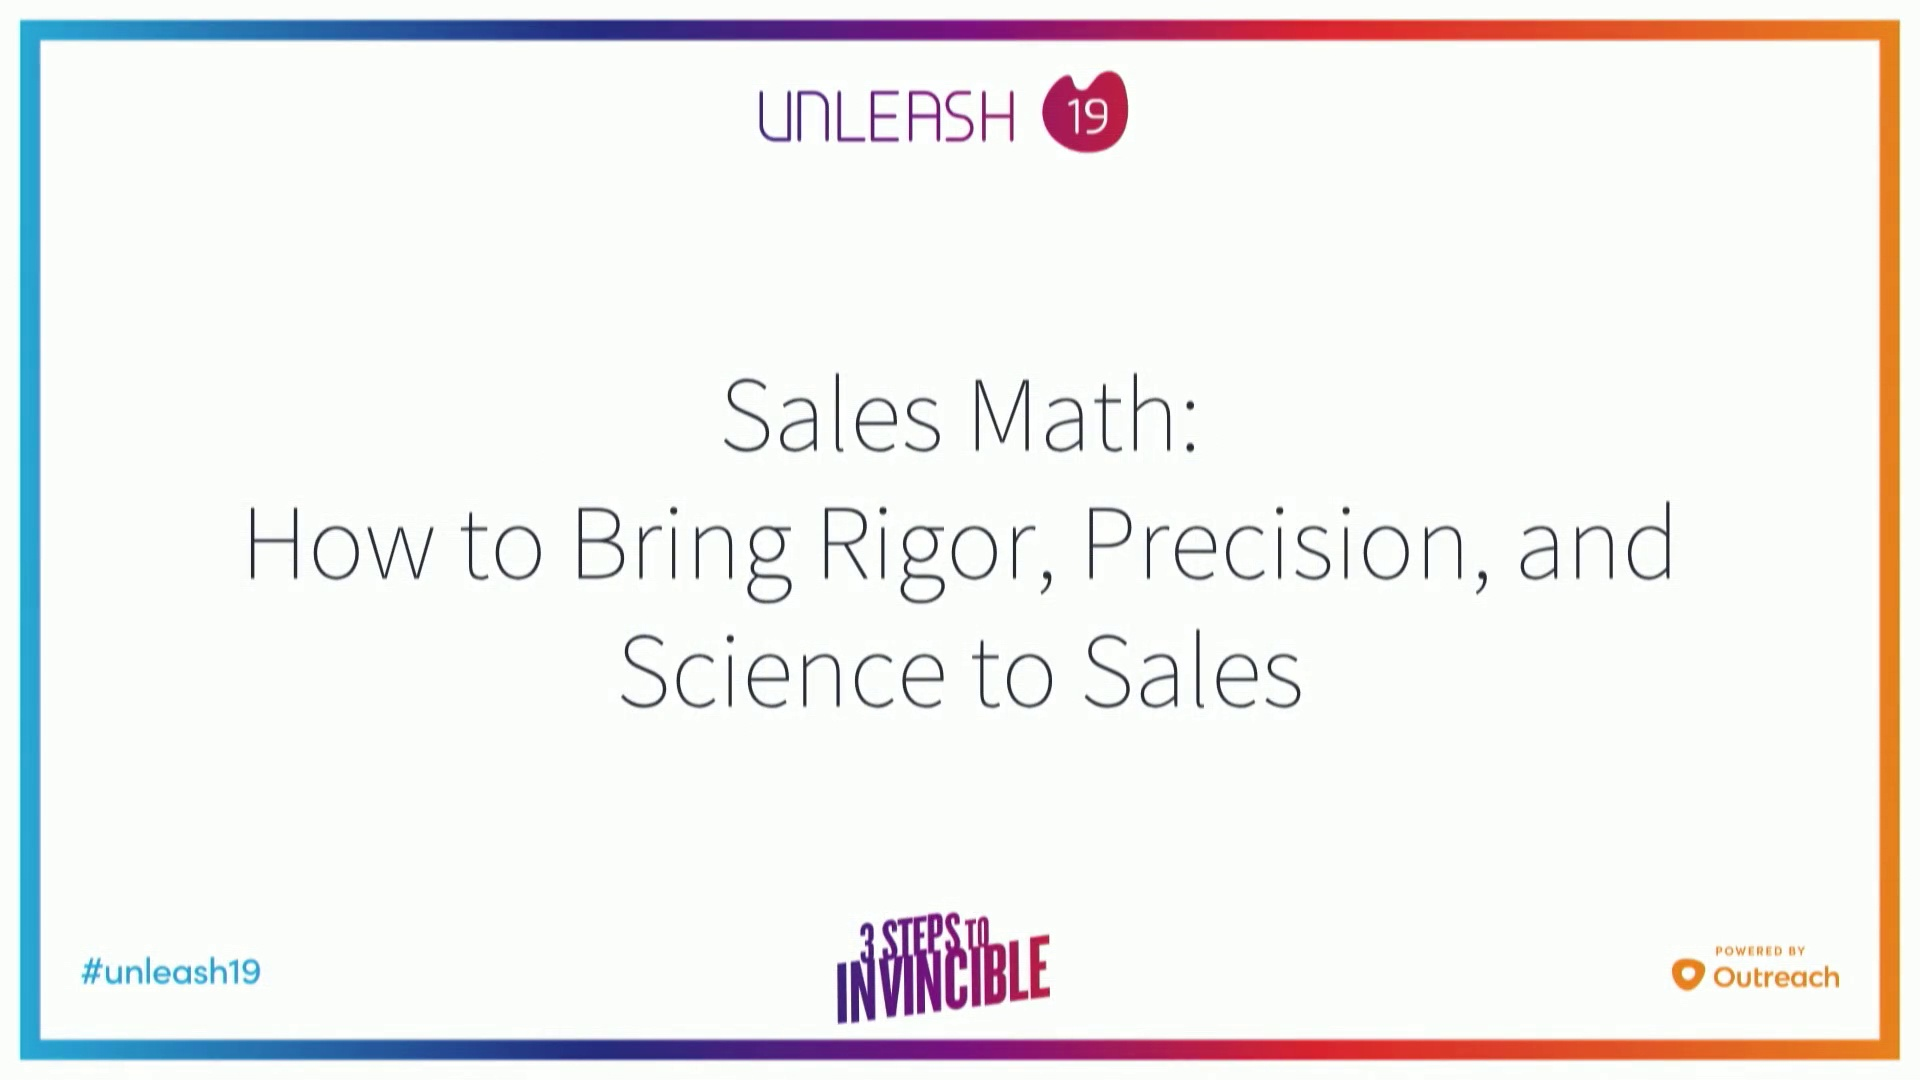 Sales Math How to Bring Rigor, Precision, and Science to Sales - Pete Kazanjy, Karen Rohrer, Dan Brayton, Zaw Lin Hteik